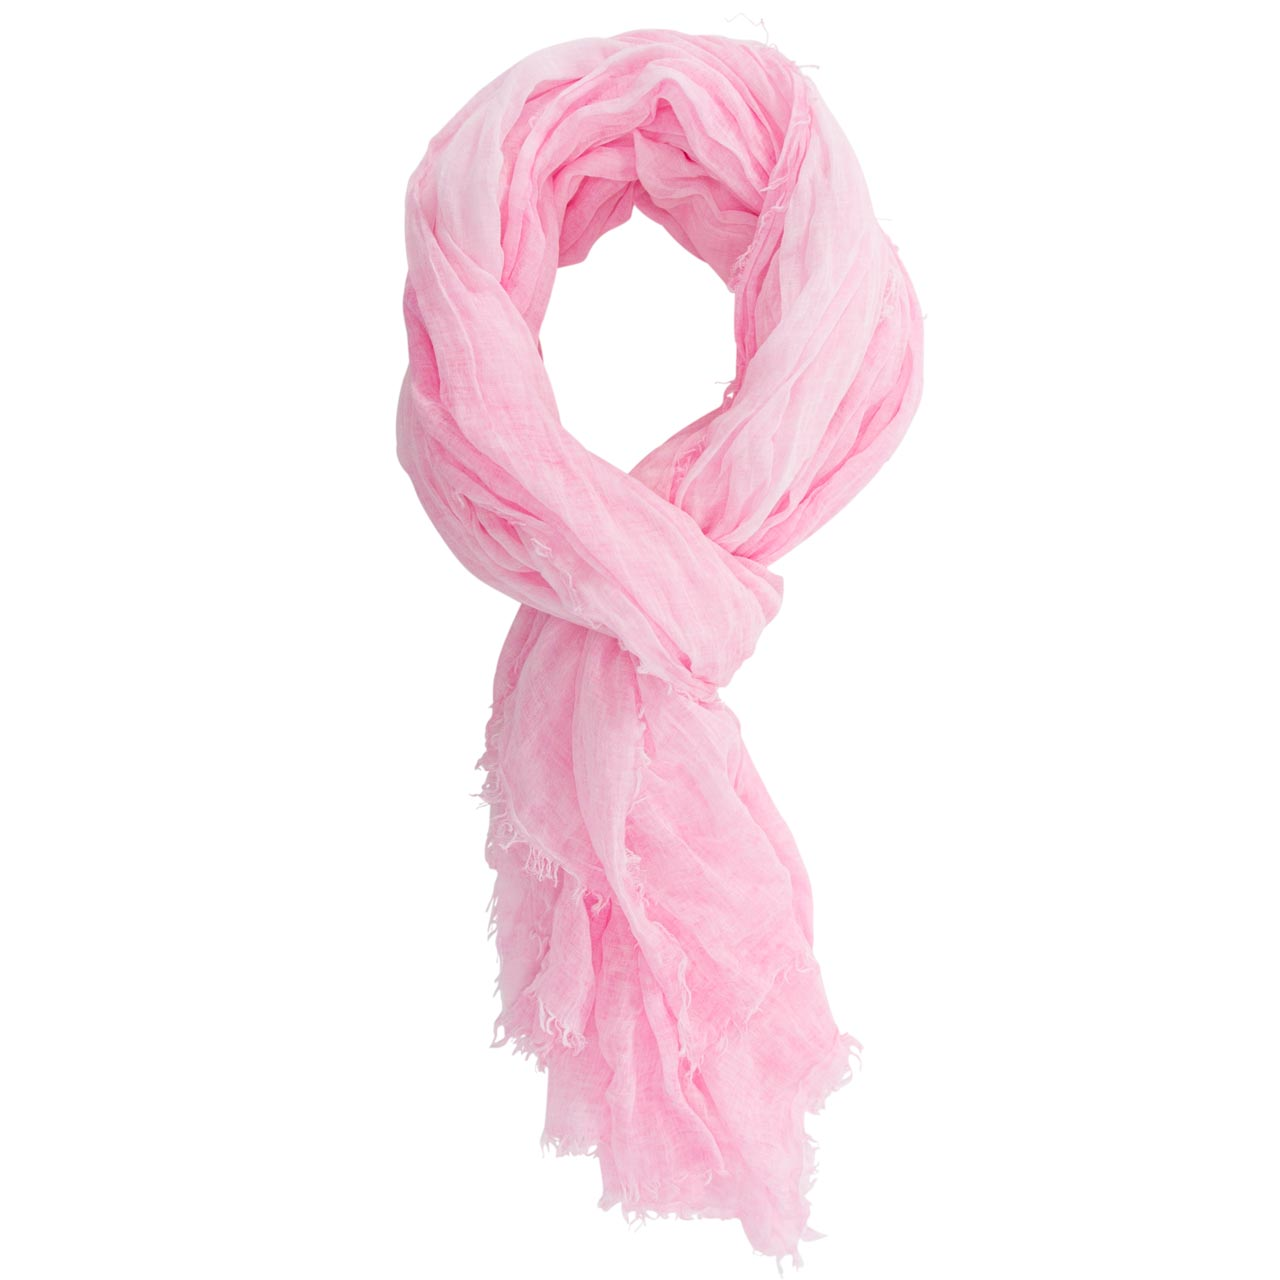 Cotton Scarf Pastel Pink | The Design Gift Shop